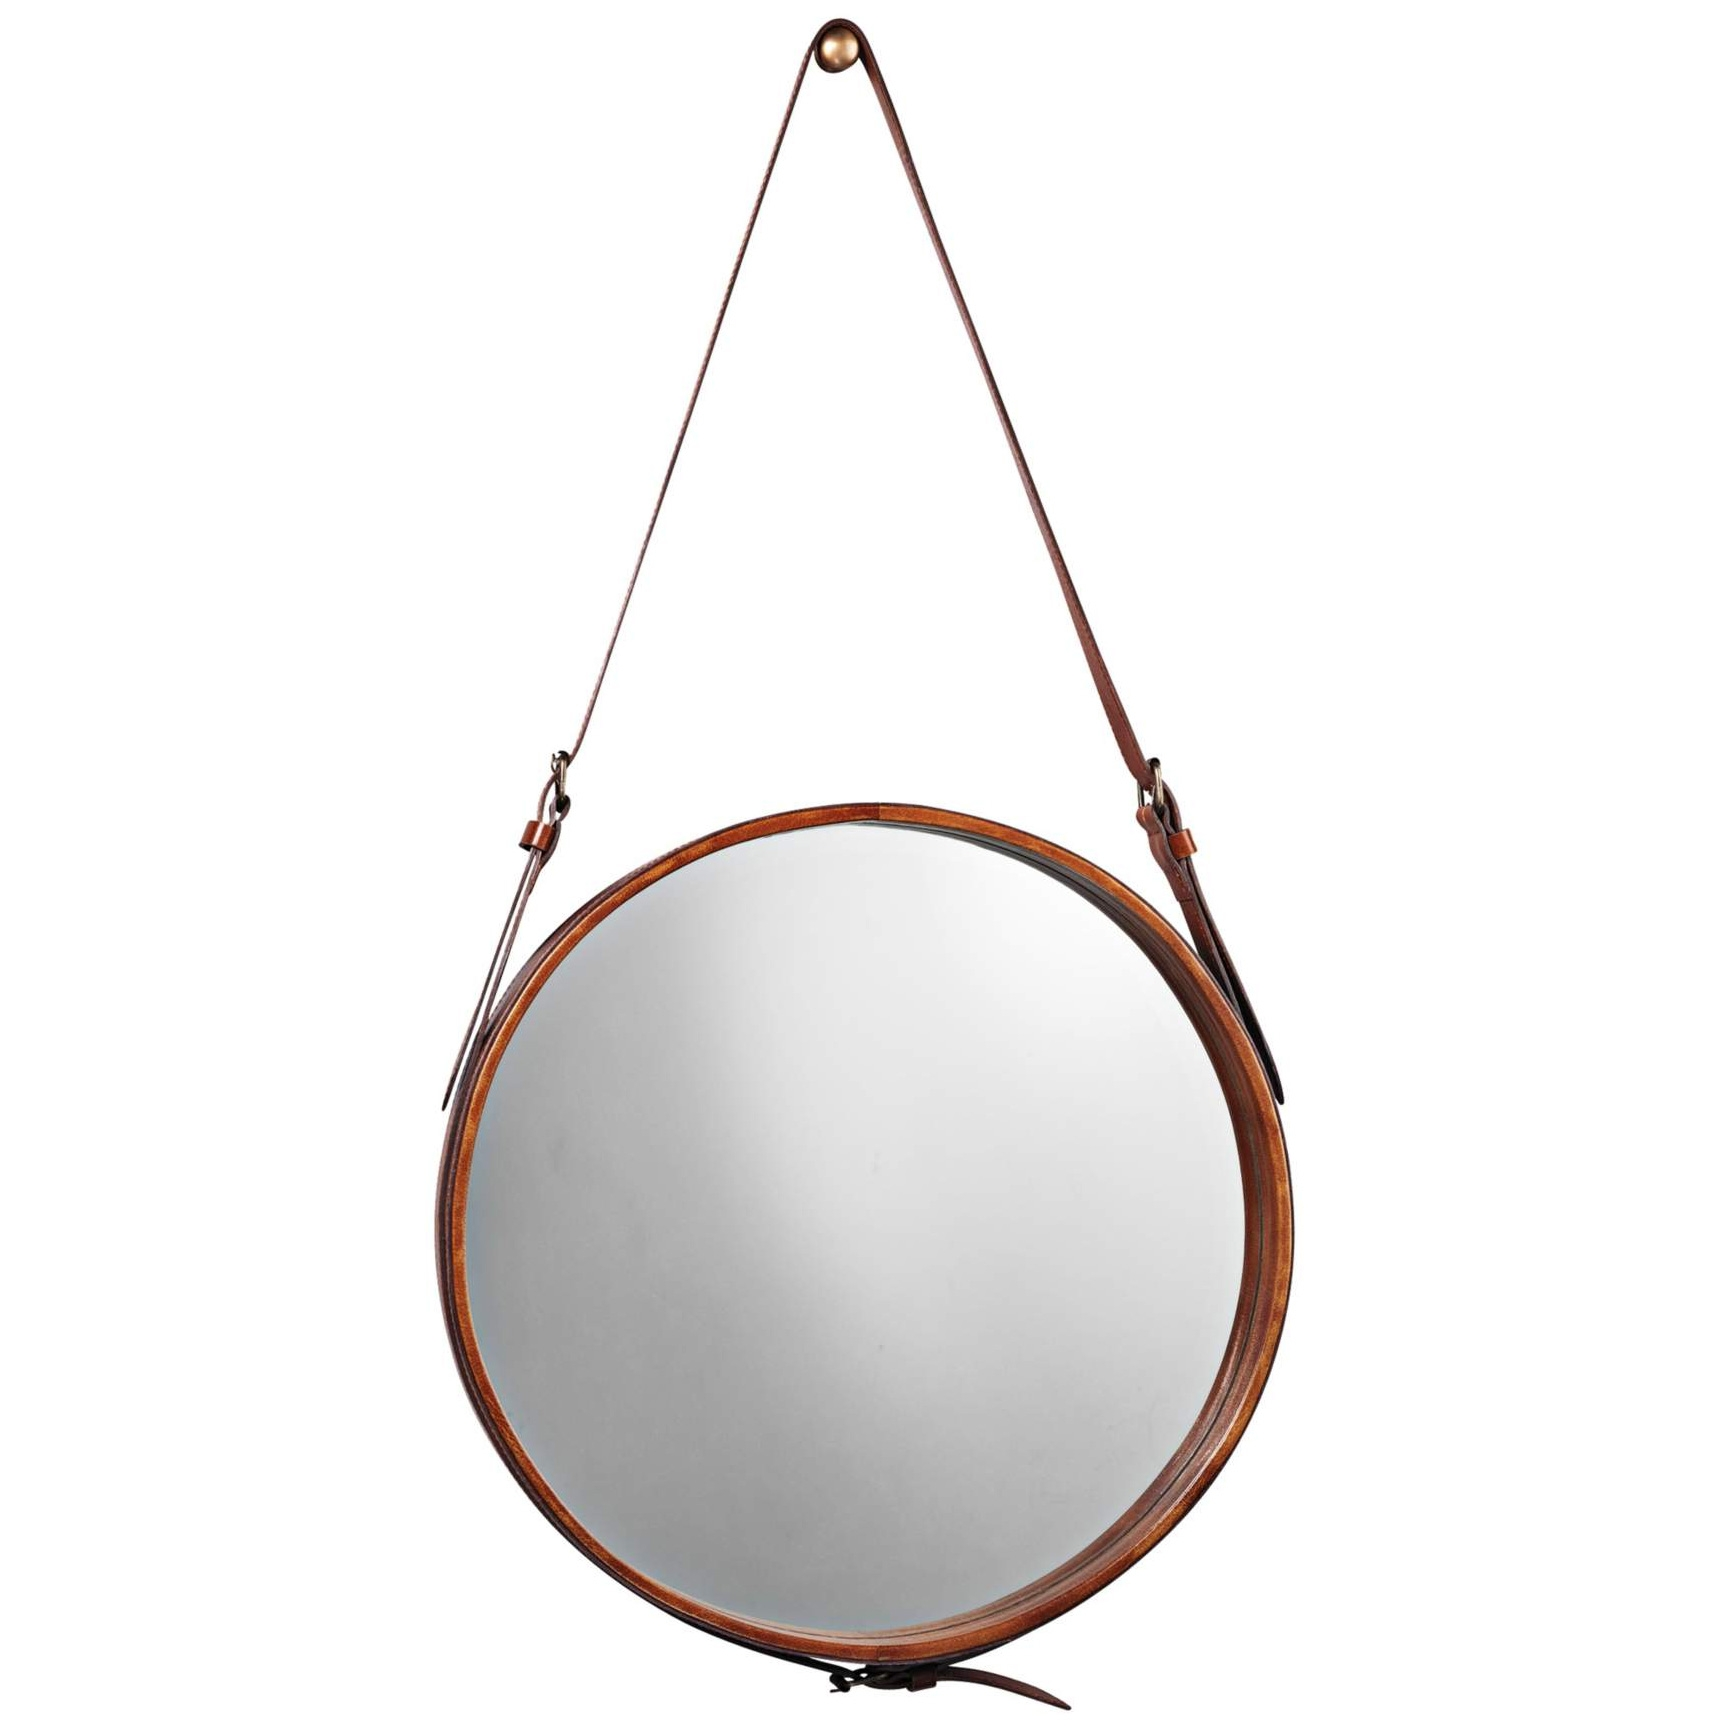 Leather Mirror Jamie Young Company 7roun Mibr Throughout Leather Round Mirror (Image 7 of 15)